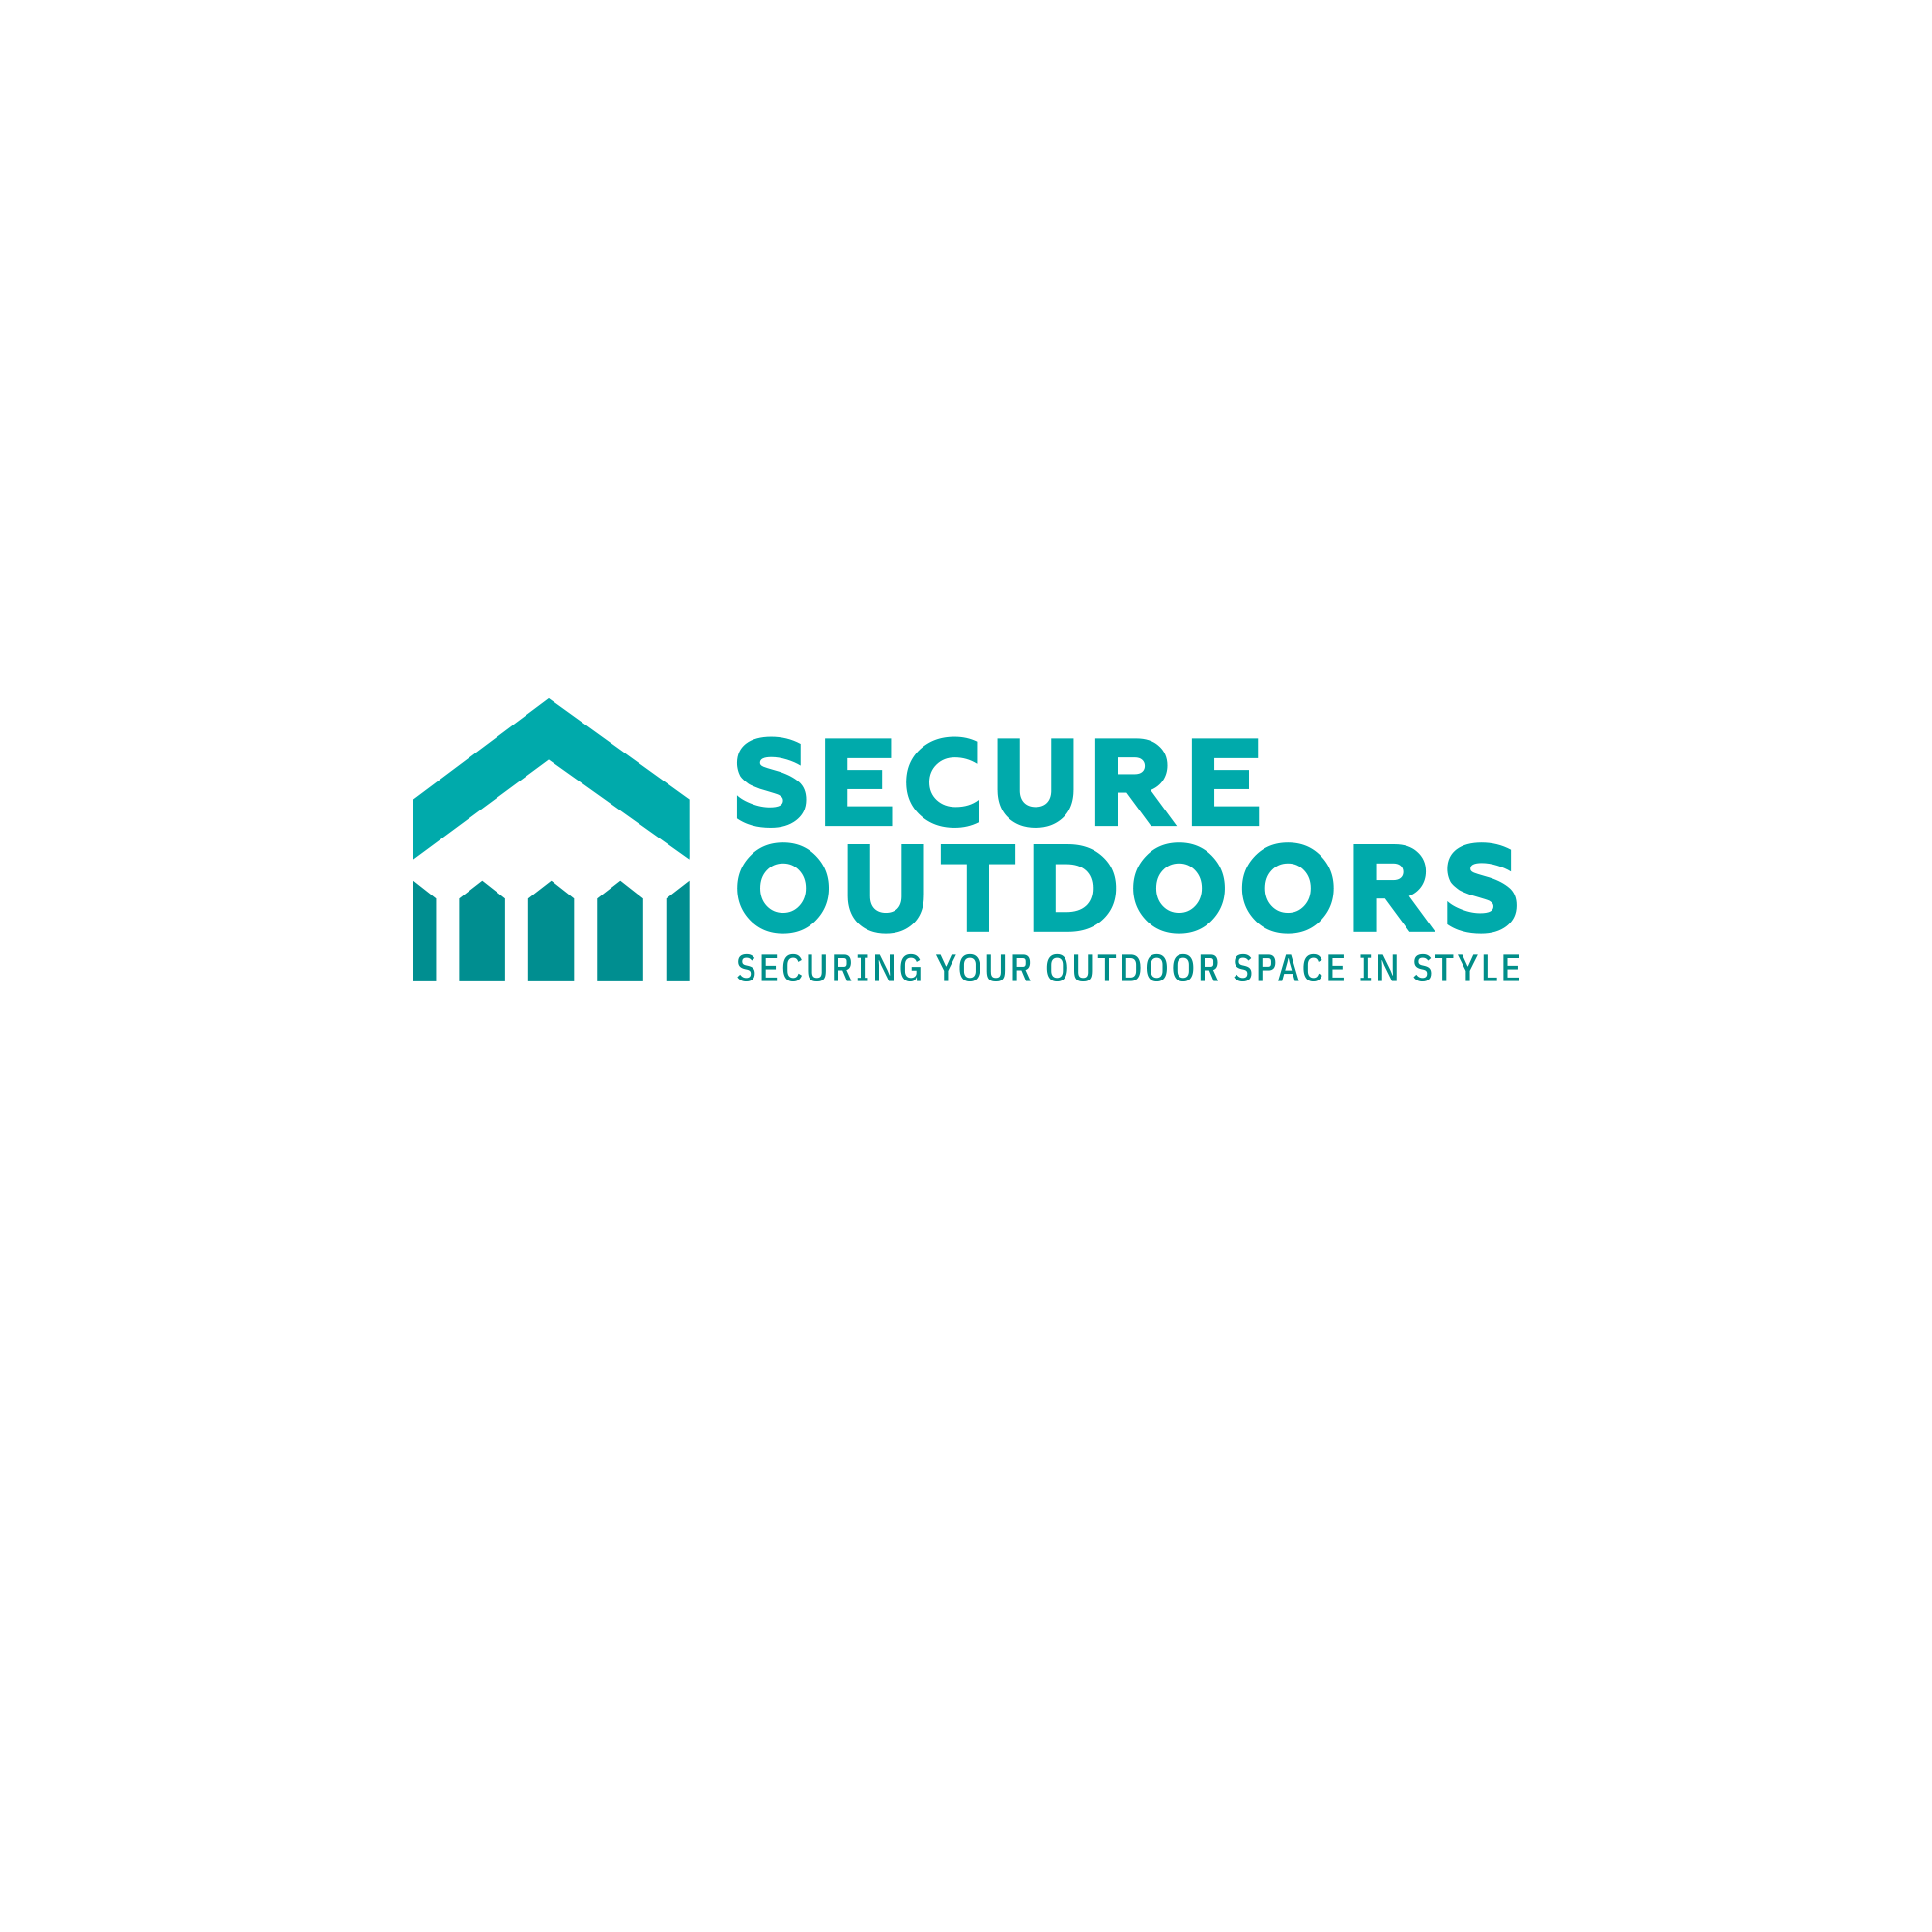 Create a modern, professional logo for Secure Outdoors